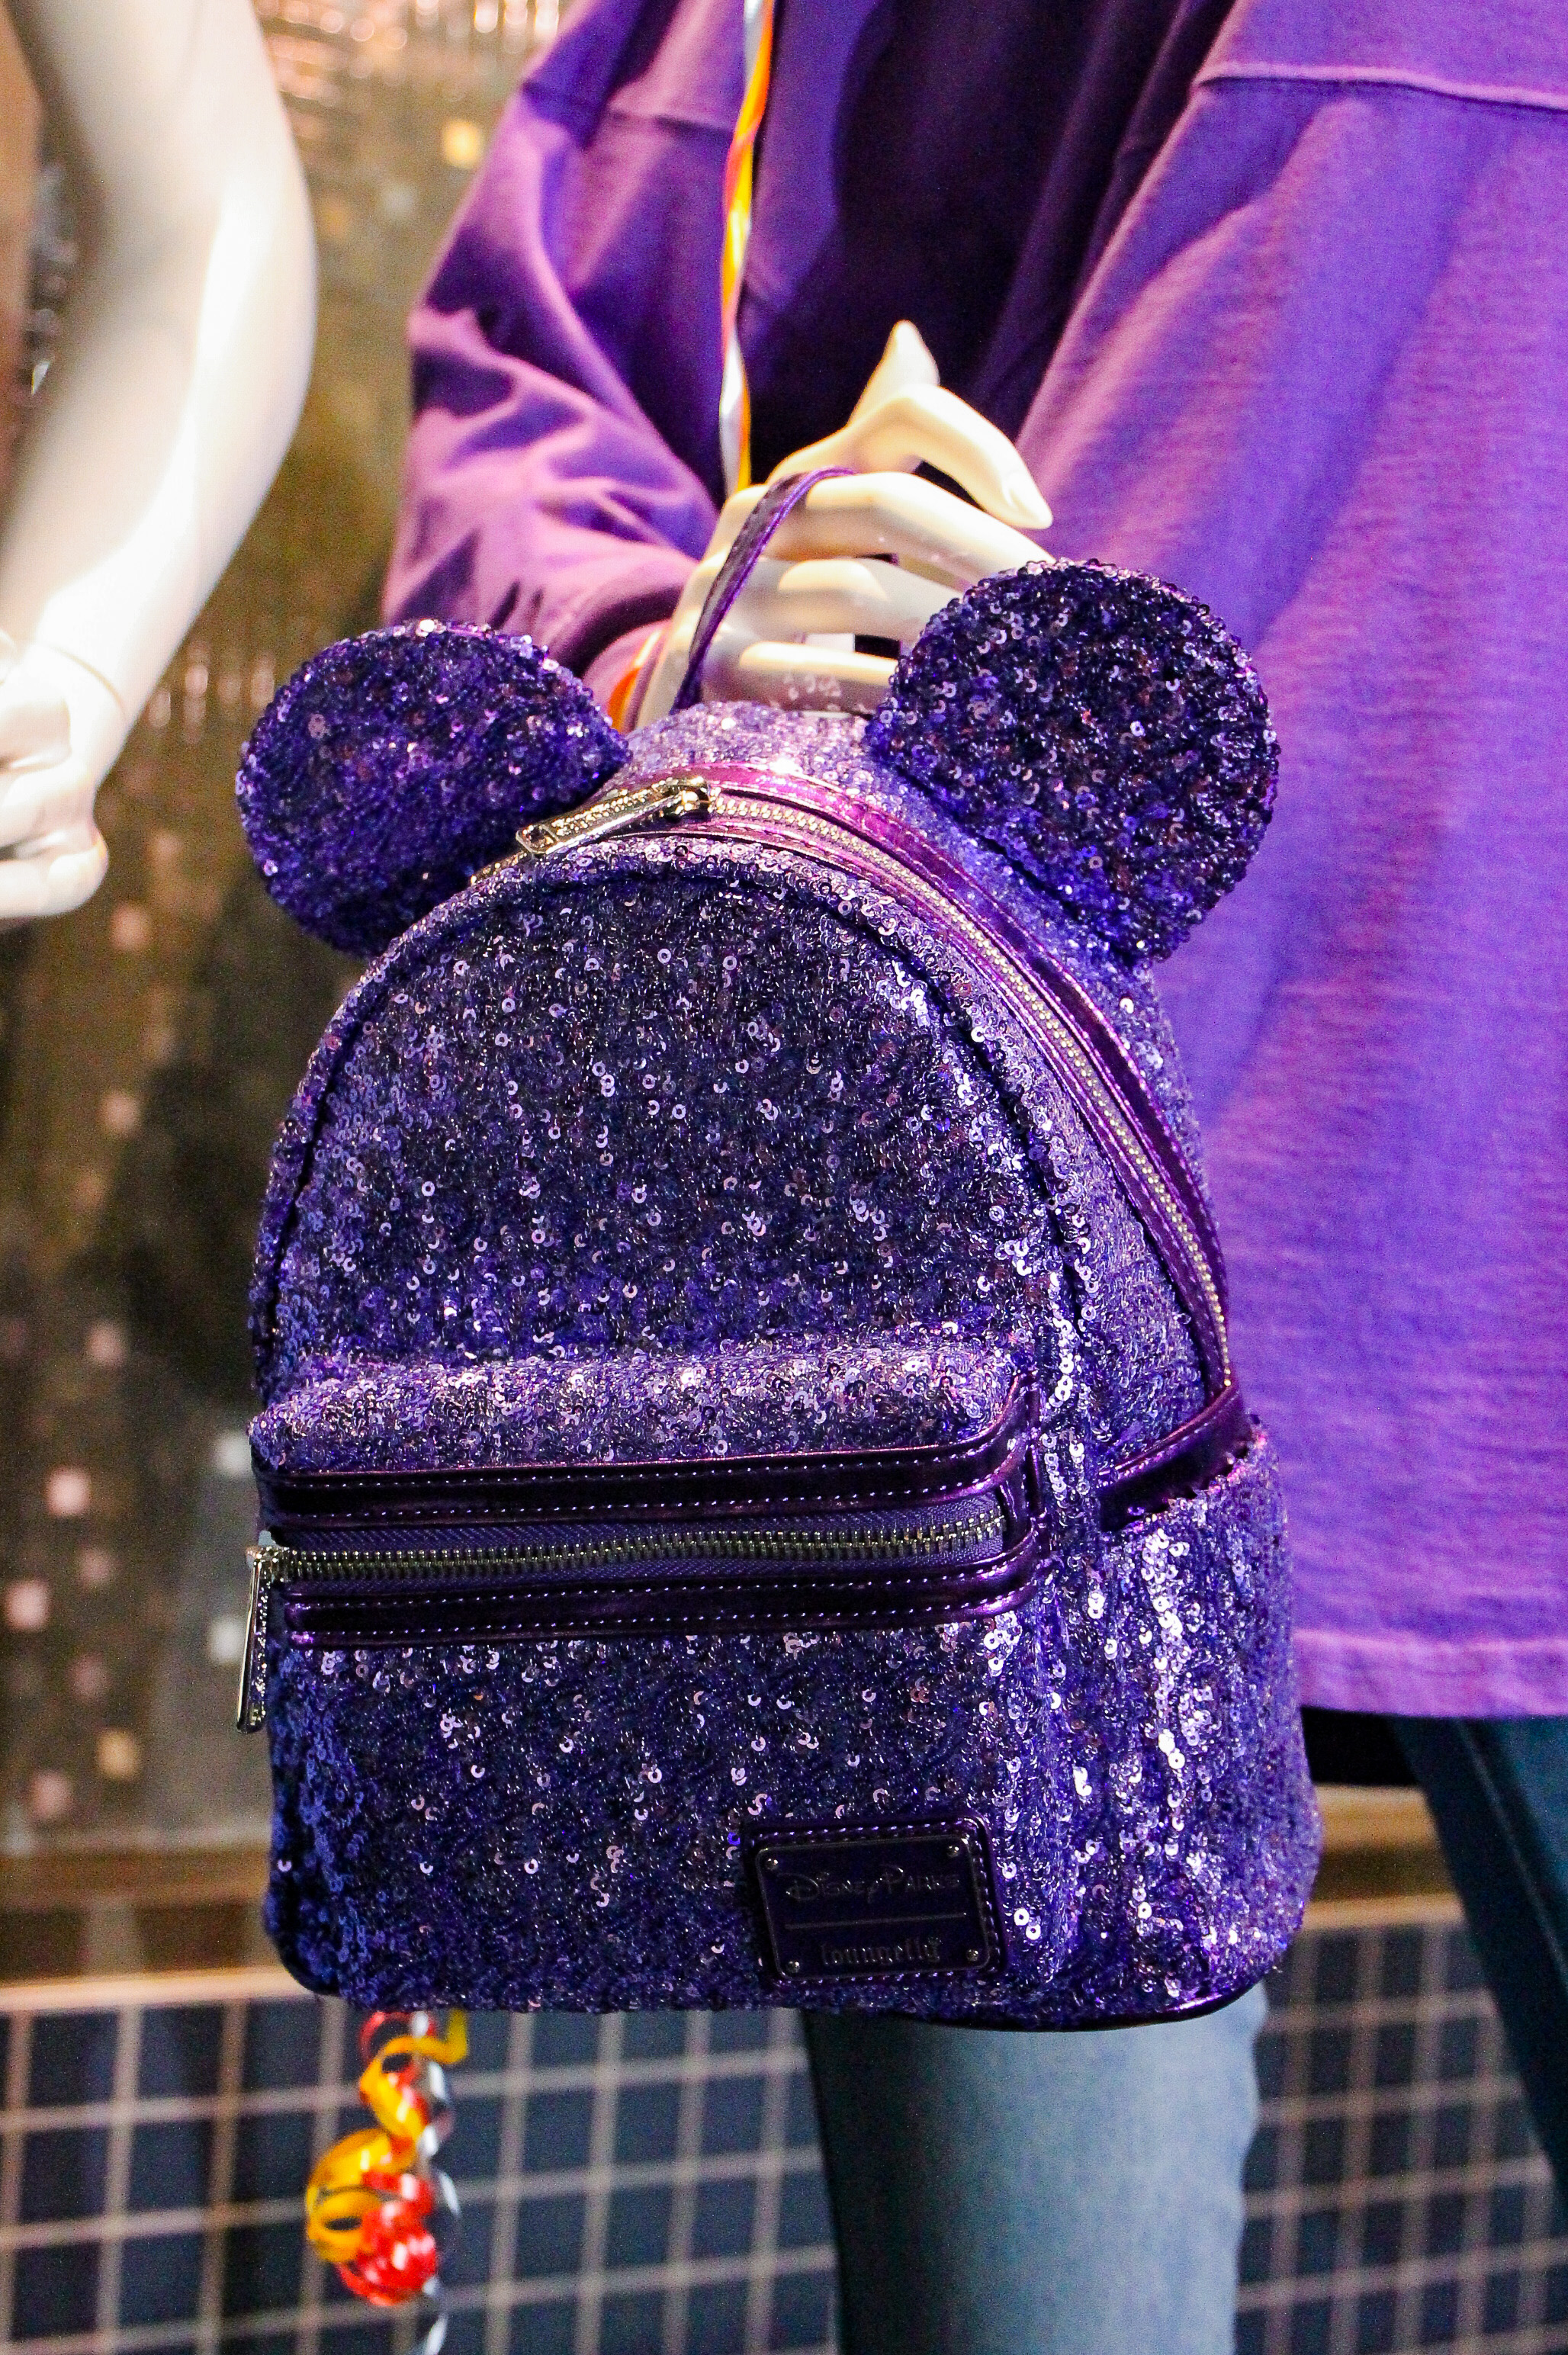 Obsessed with Disneyland merch? Get Your Ears On just kicked off and the merchandise is AMAZING! This Potion Purple backpack is the hottest item!